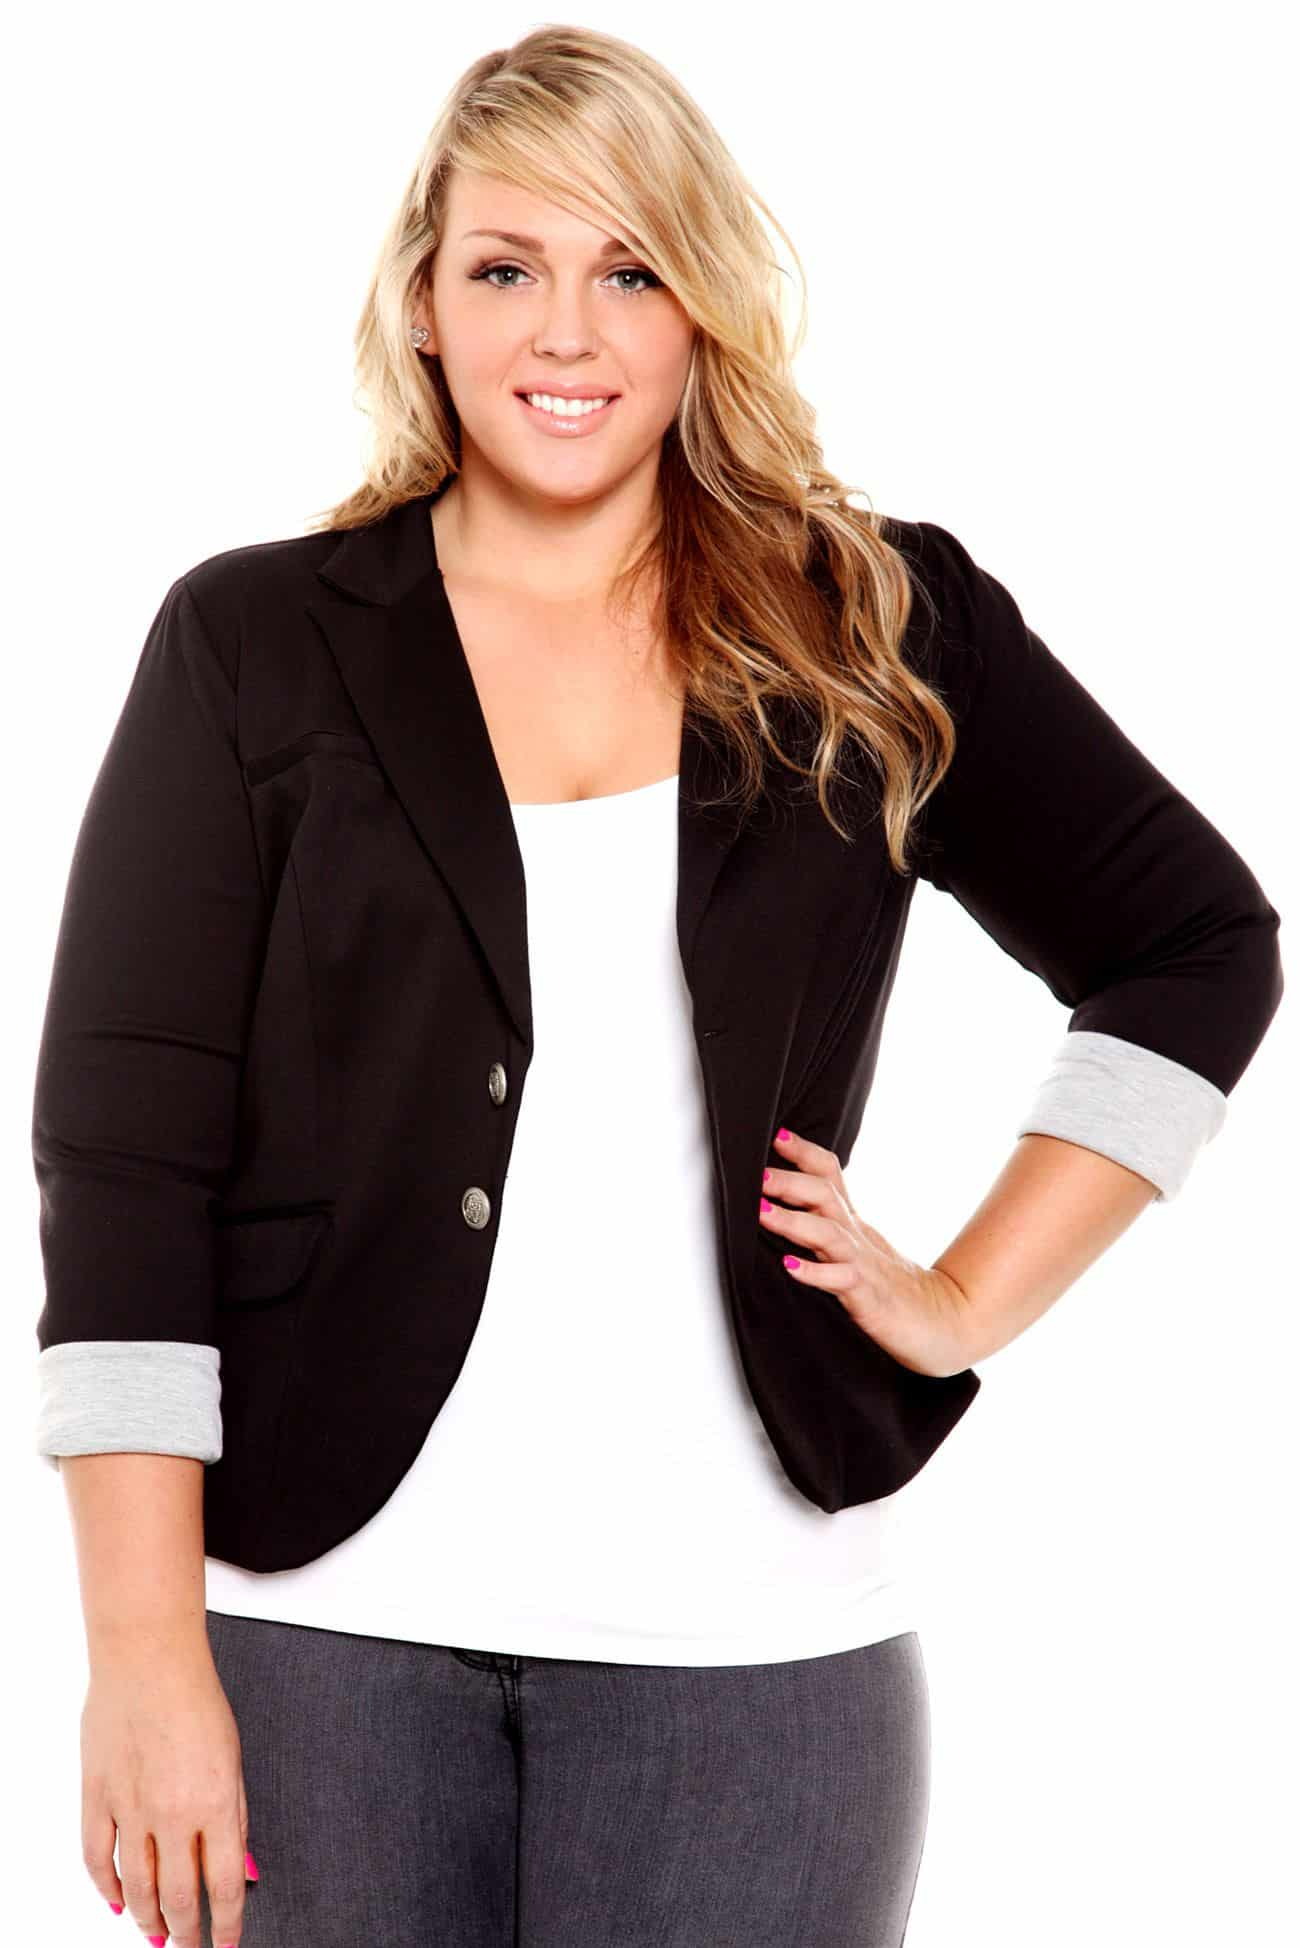 How to Perfectly Measure Yourself for Plus Size Blazers